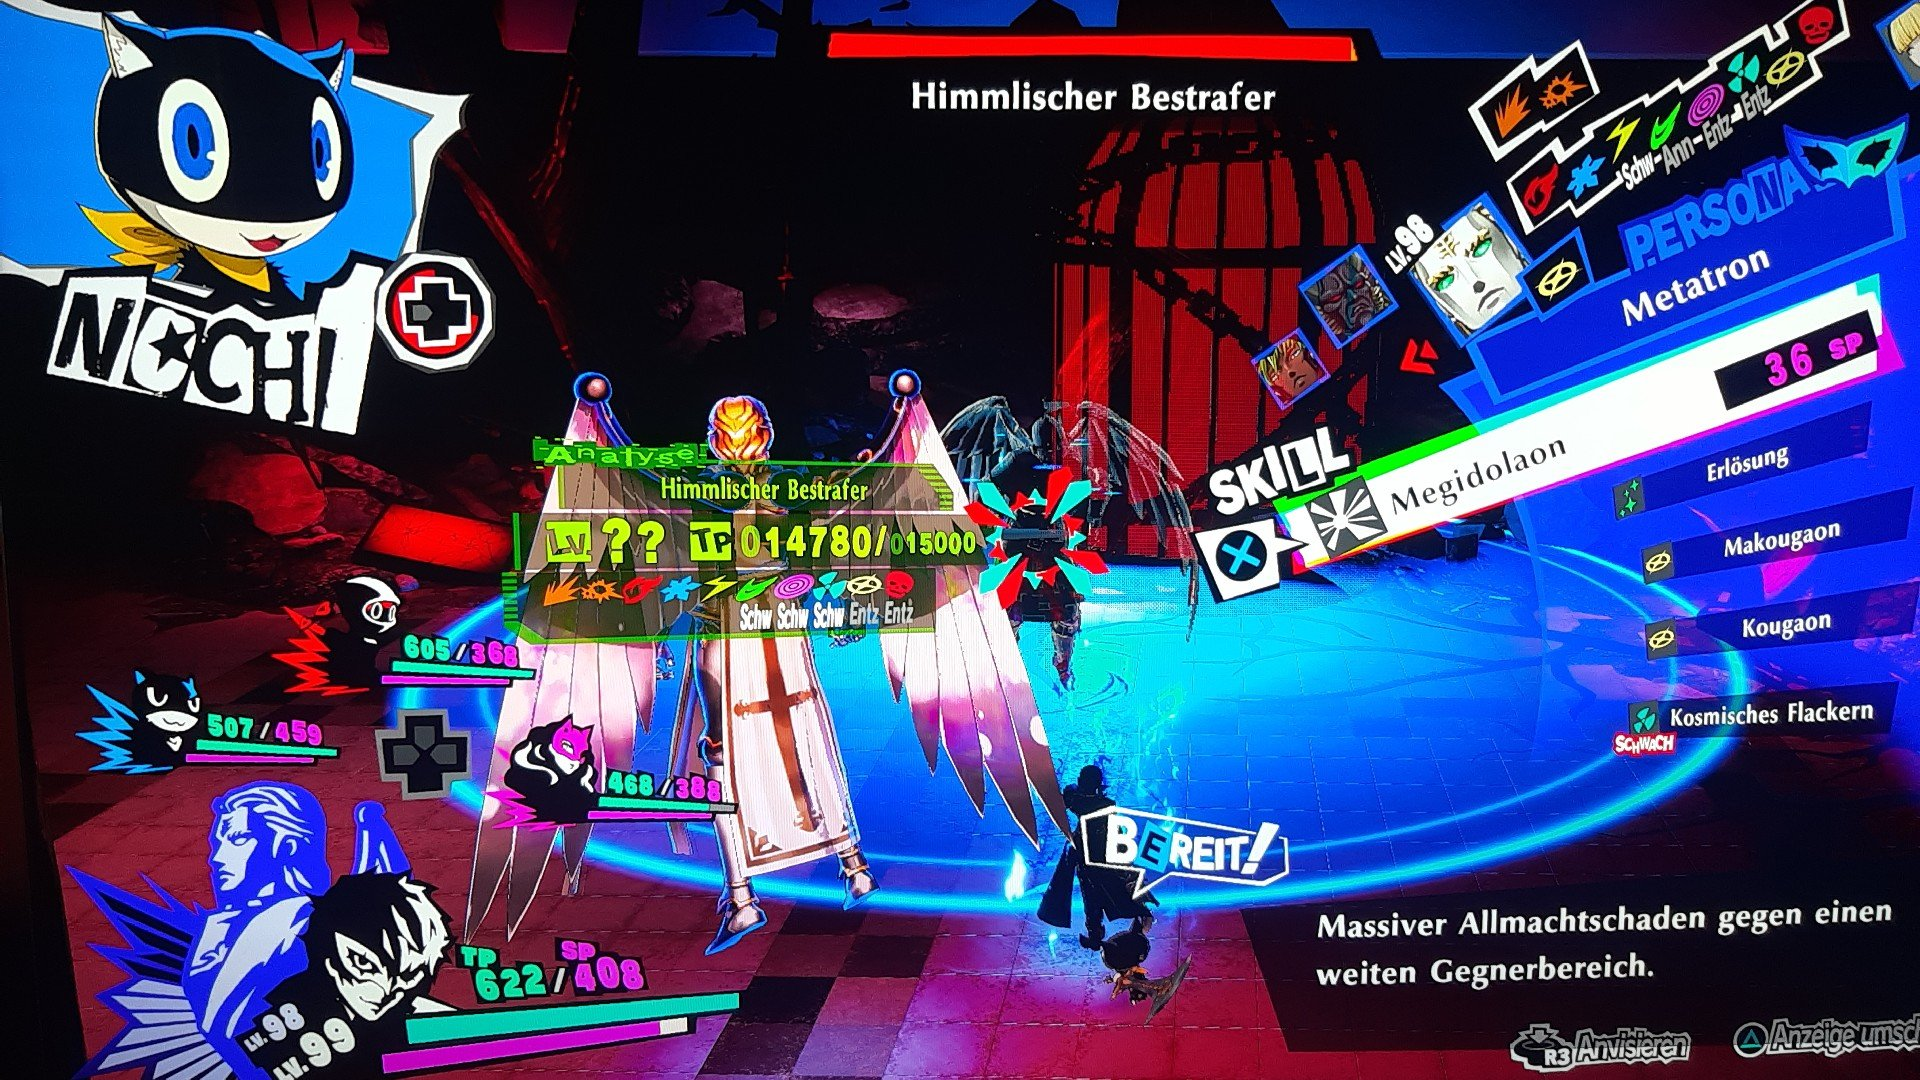 Persona 5 Strikers Dire Shadow Düstershatten Baum des Wissens PS4 RPG JRPG Guide Himmlicher Bestrafer